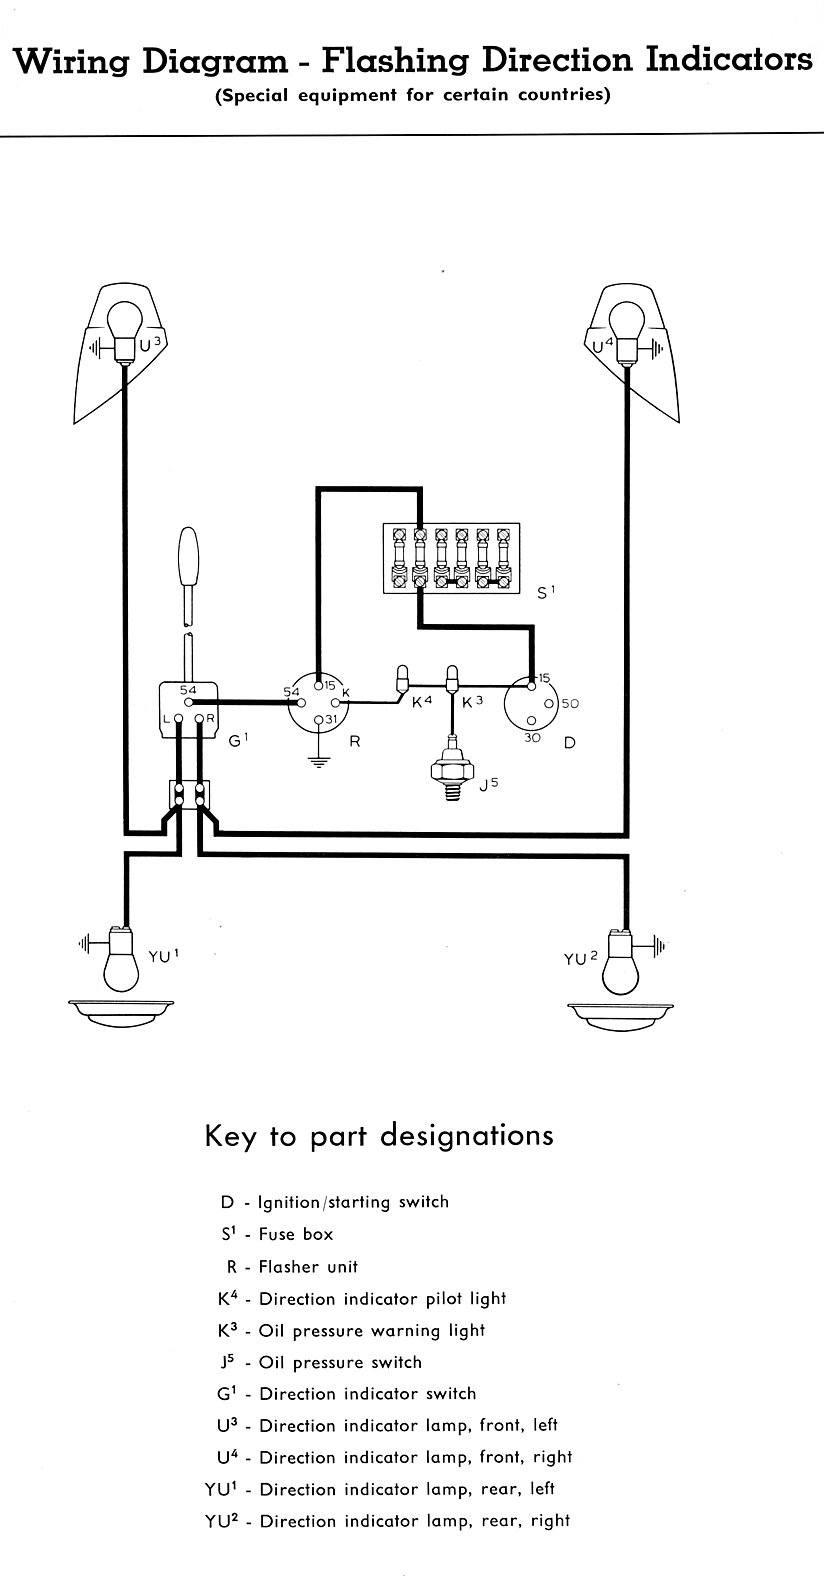 TheSamba.com :: Type 2 Wiring Diagrams on 1974 chevy electrical diagram, 1974 chevy ignition switch, 1974 chevy charging diagram, 1974 chevy ignition coil, 1974 chevy fuse box diagram,